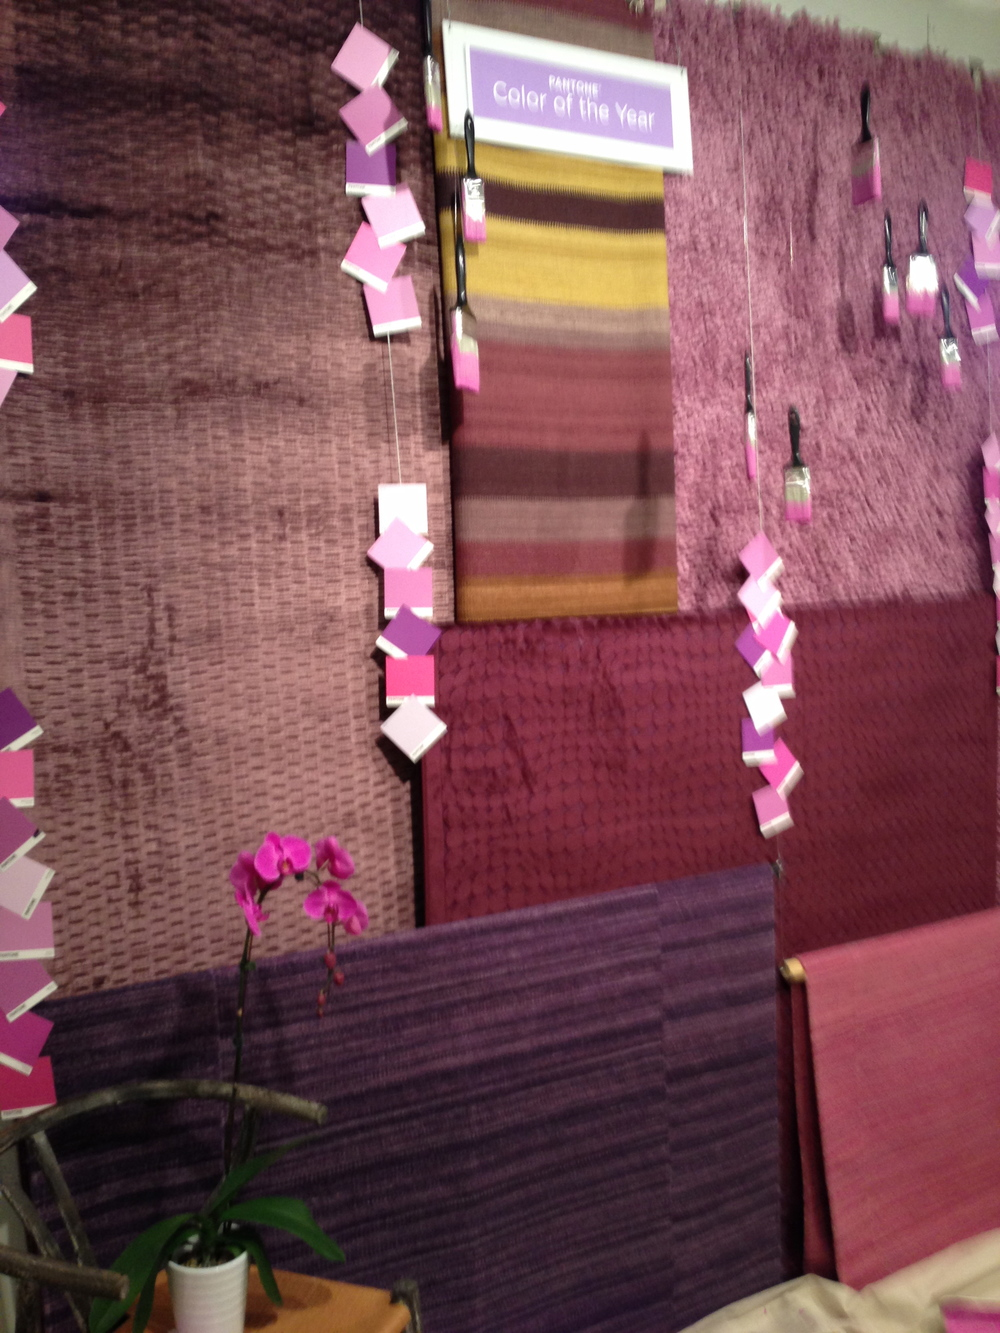 LoLoi Rugs featured the Pantone Color of the Year 2014 - Radiant Orchid